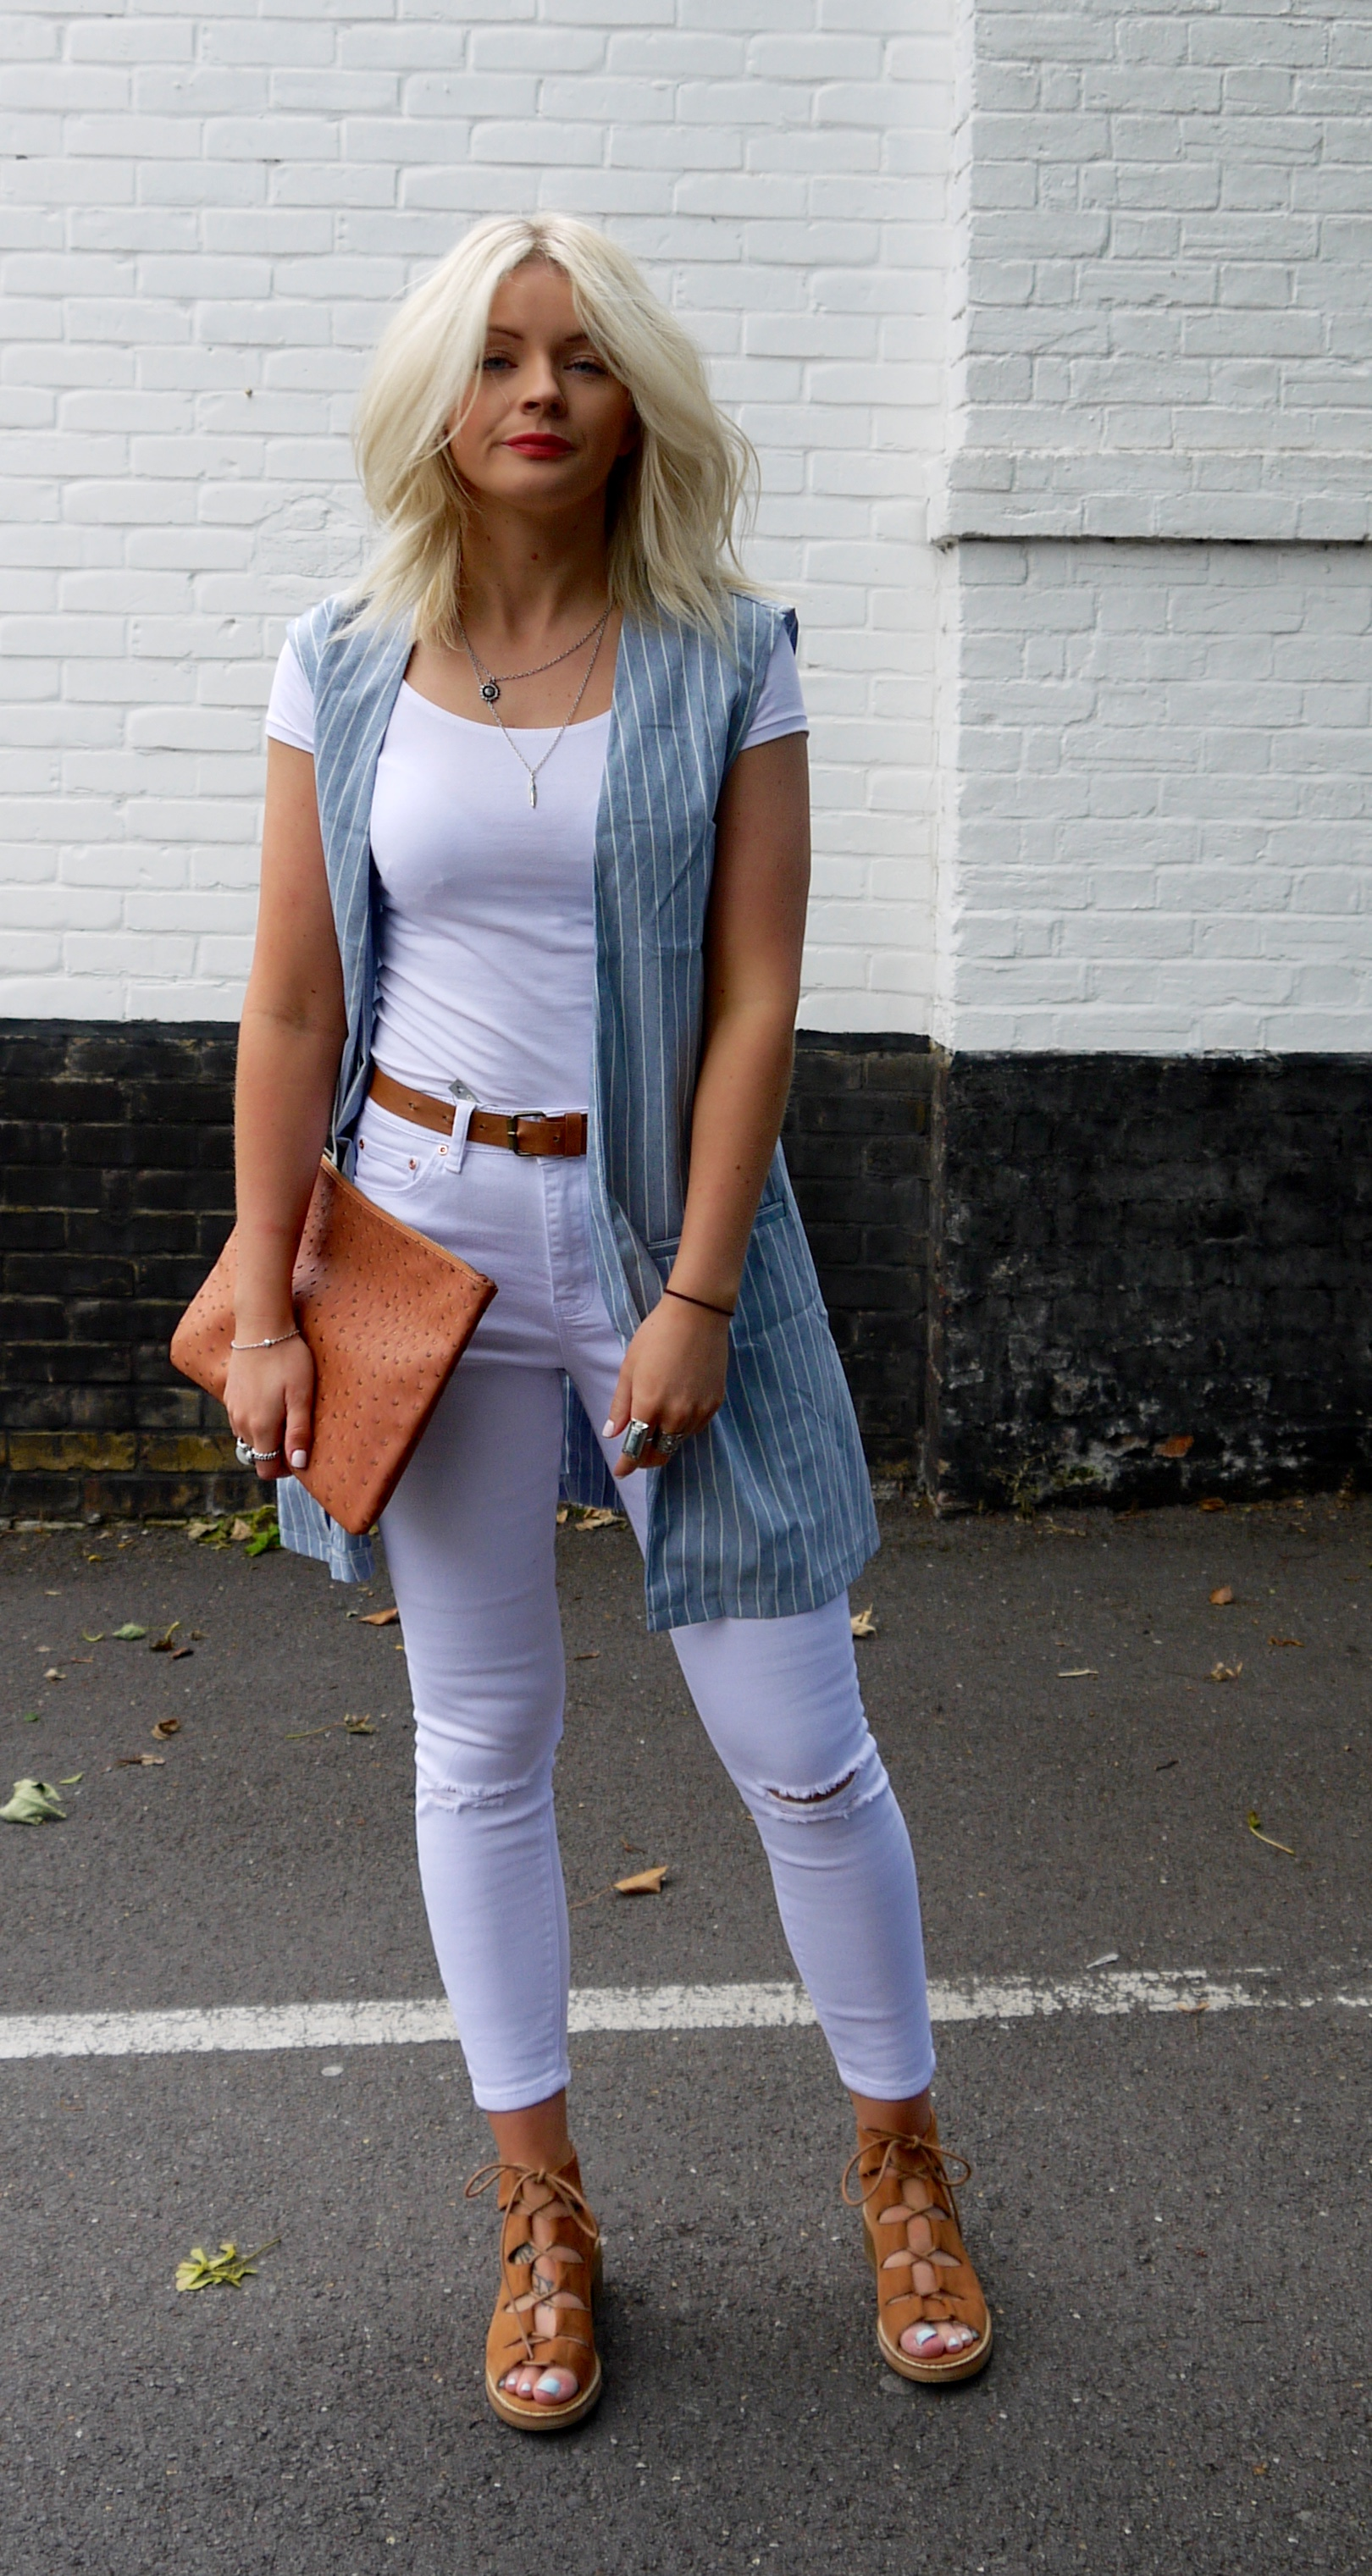 white ripped jeans, tan laceup sandals, tan accessories, blonde wavy hair, laura byrnes, lauras little locket, stripes, sleeveless blazer